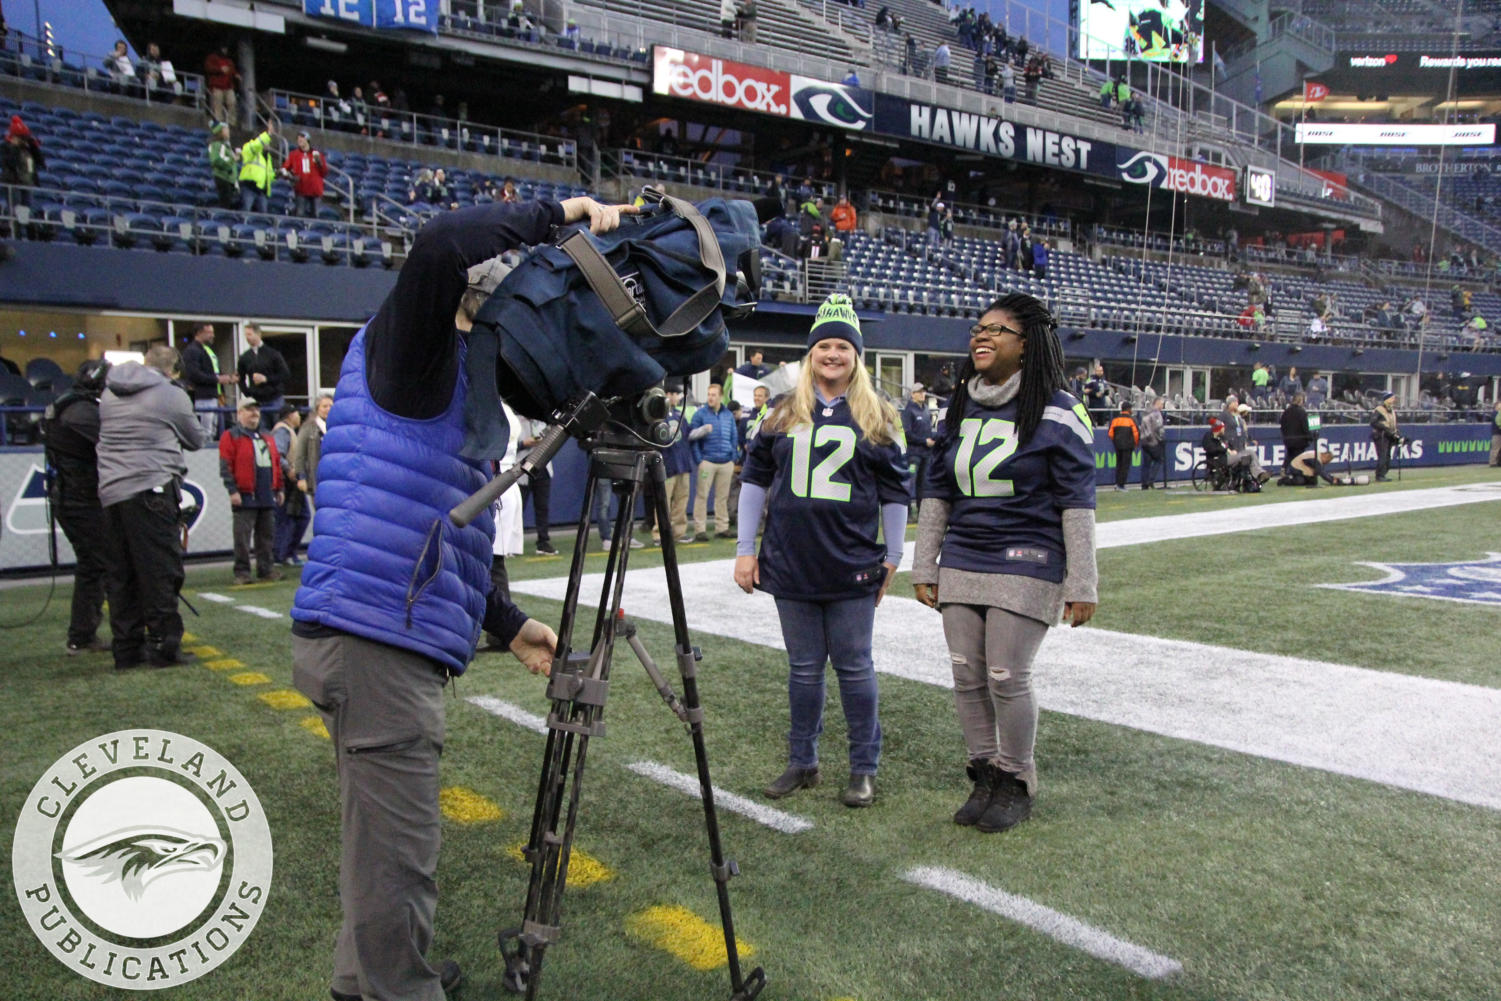 Media teacher Teresa Scribner, right, and Jessica Torvik, a teacher from Nathan Hale, film their introductions to be played during the Seahwaks' game against the Atlanta Falcons on Nov.20. Both Scribner and Torvik were selected as